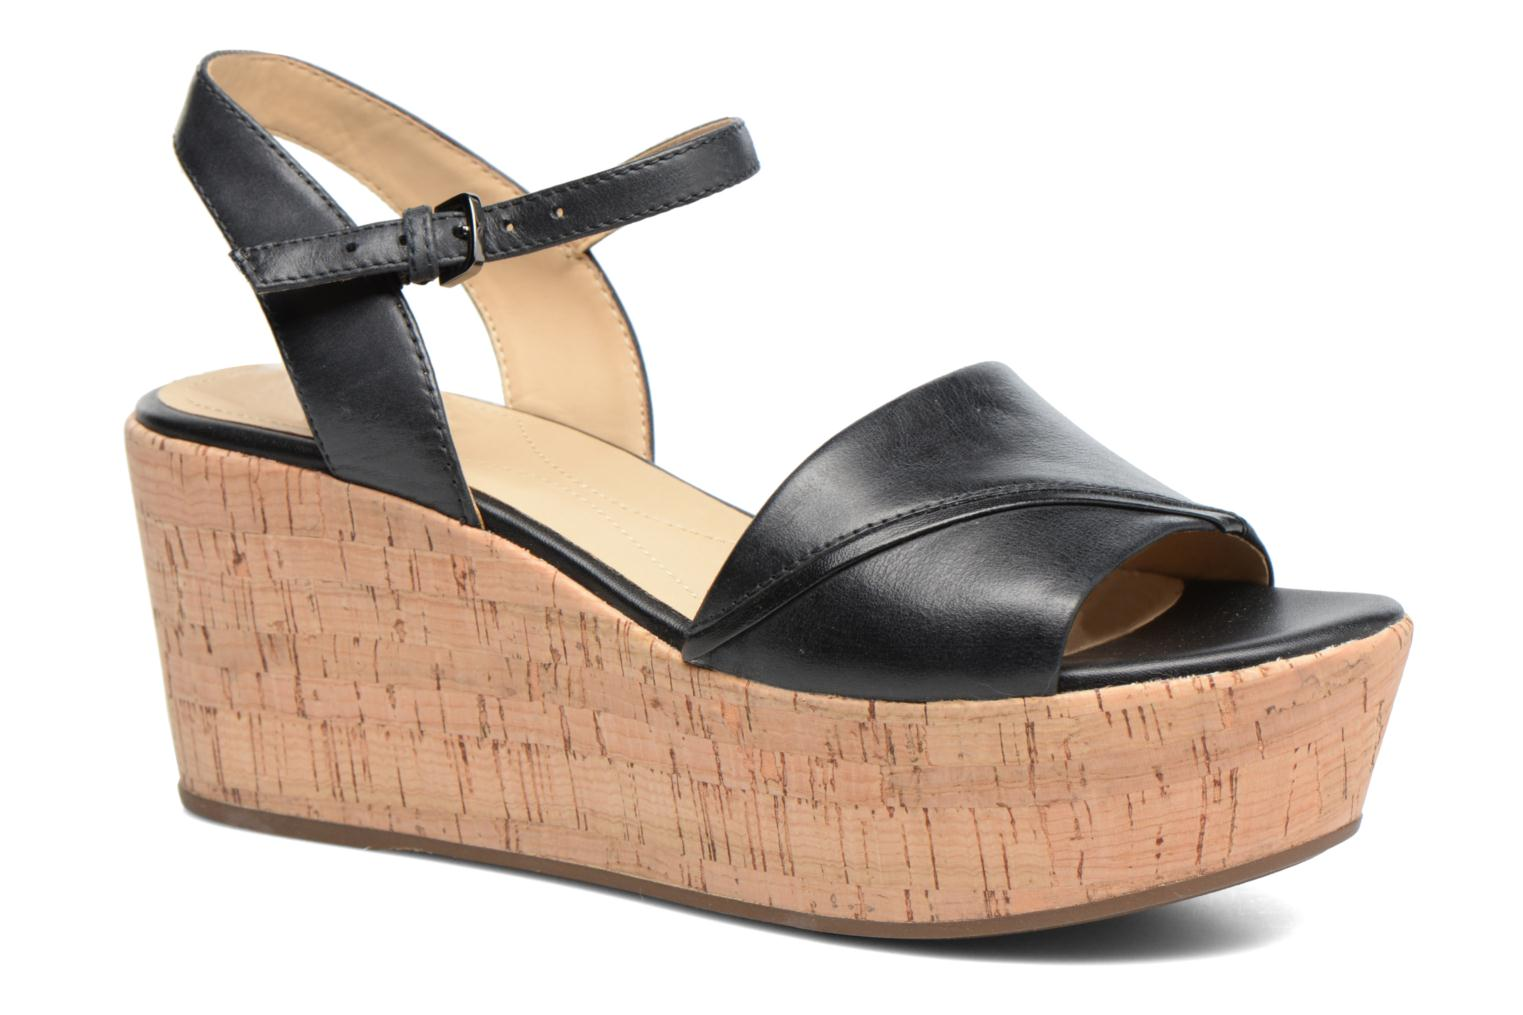 Marques Chaussure femme Geox femme D SAKELY A D724VA Taupe P?le